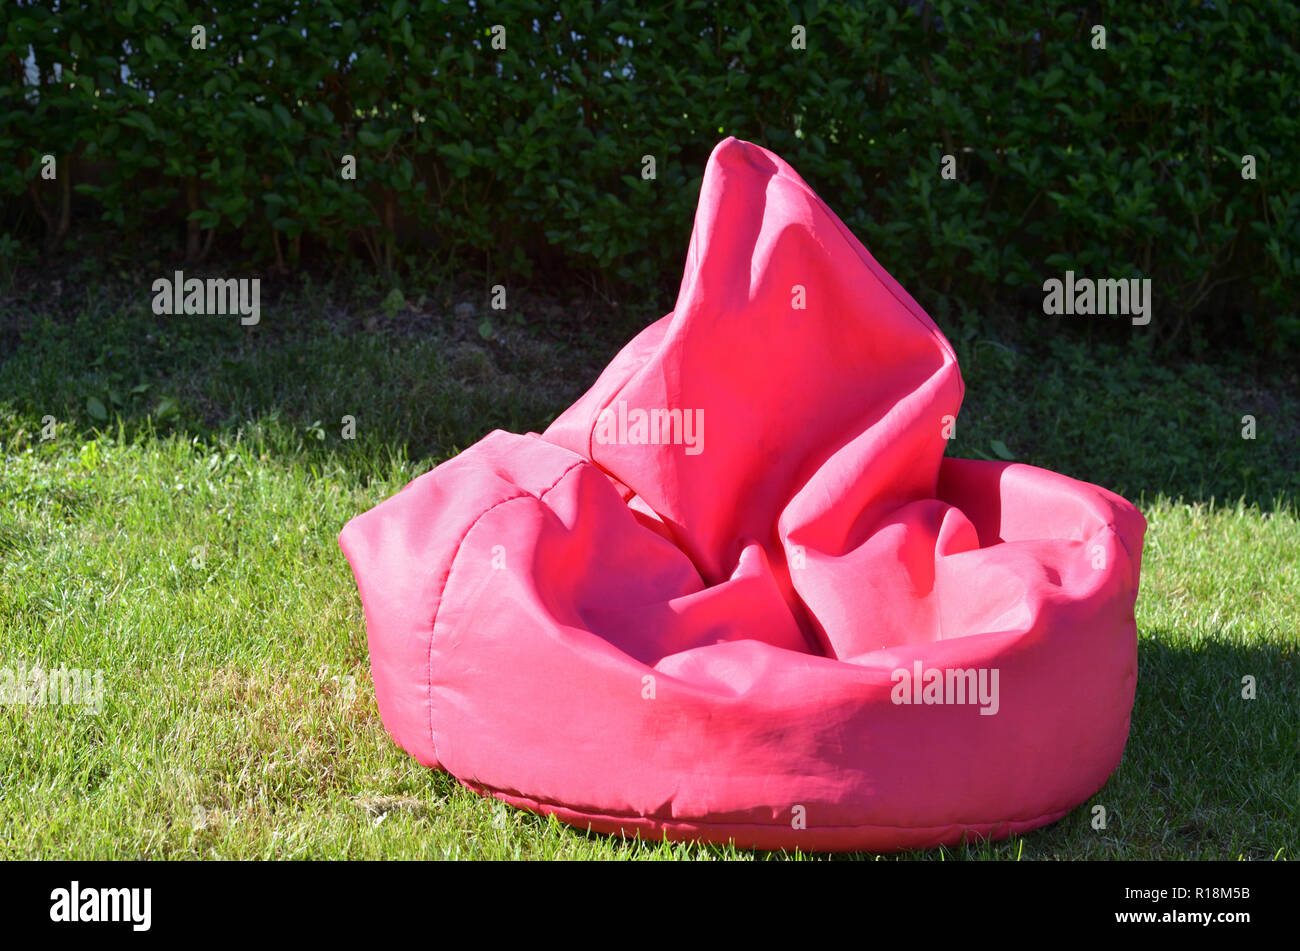 Pink bean bag on a garden lawn - Stock Image